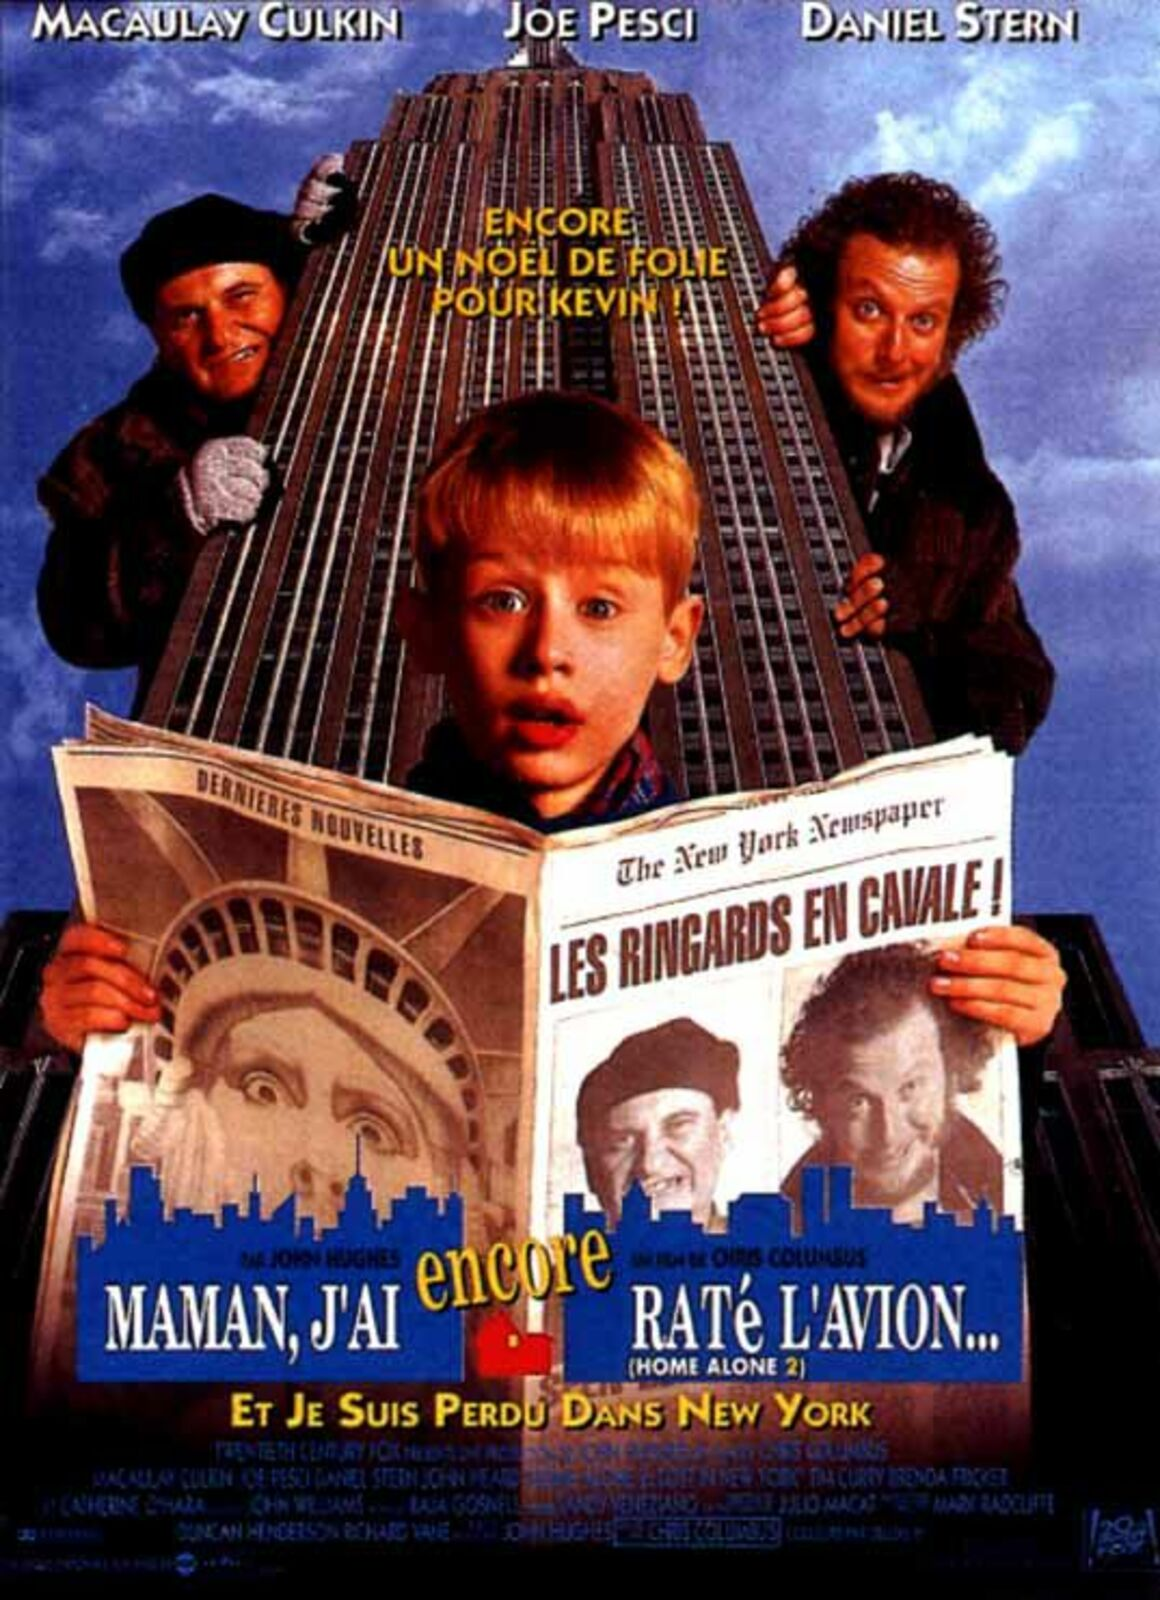 affiche poster maman raté encore avion home alone 2 lost new york disney fox